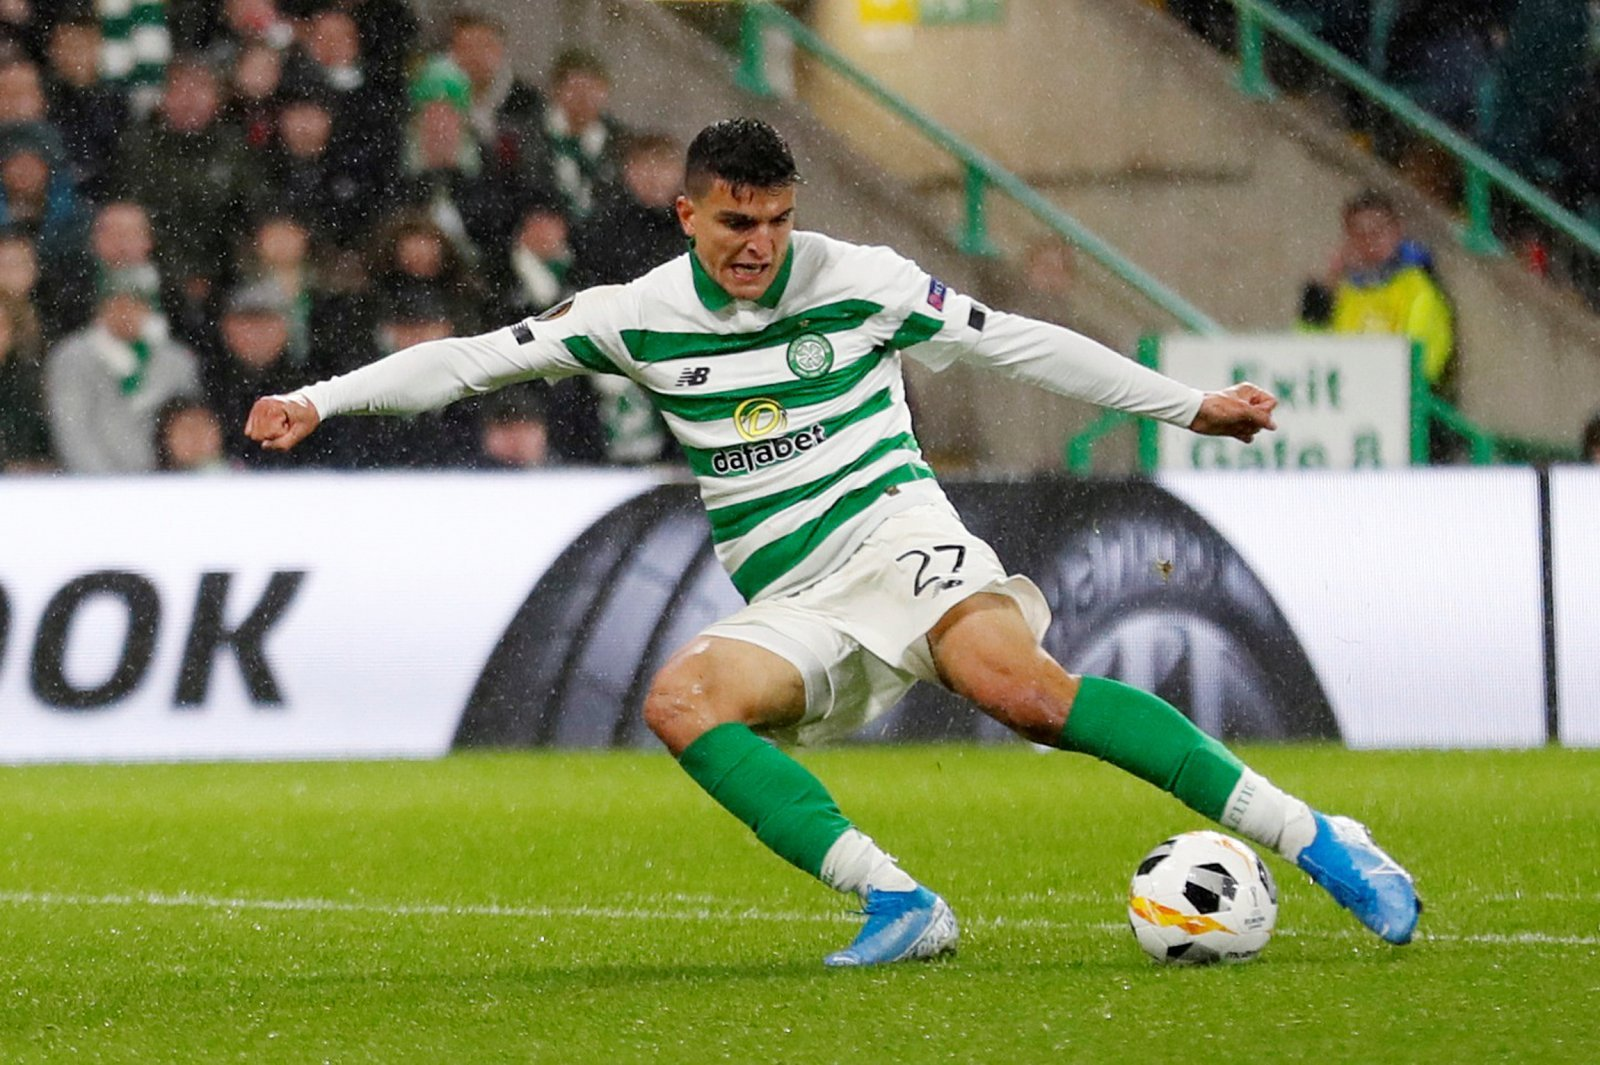 Unsung hero: Mohamed Elyounoussi only one able to take credit from Celtic's defeat